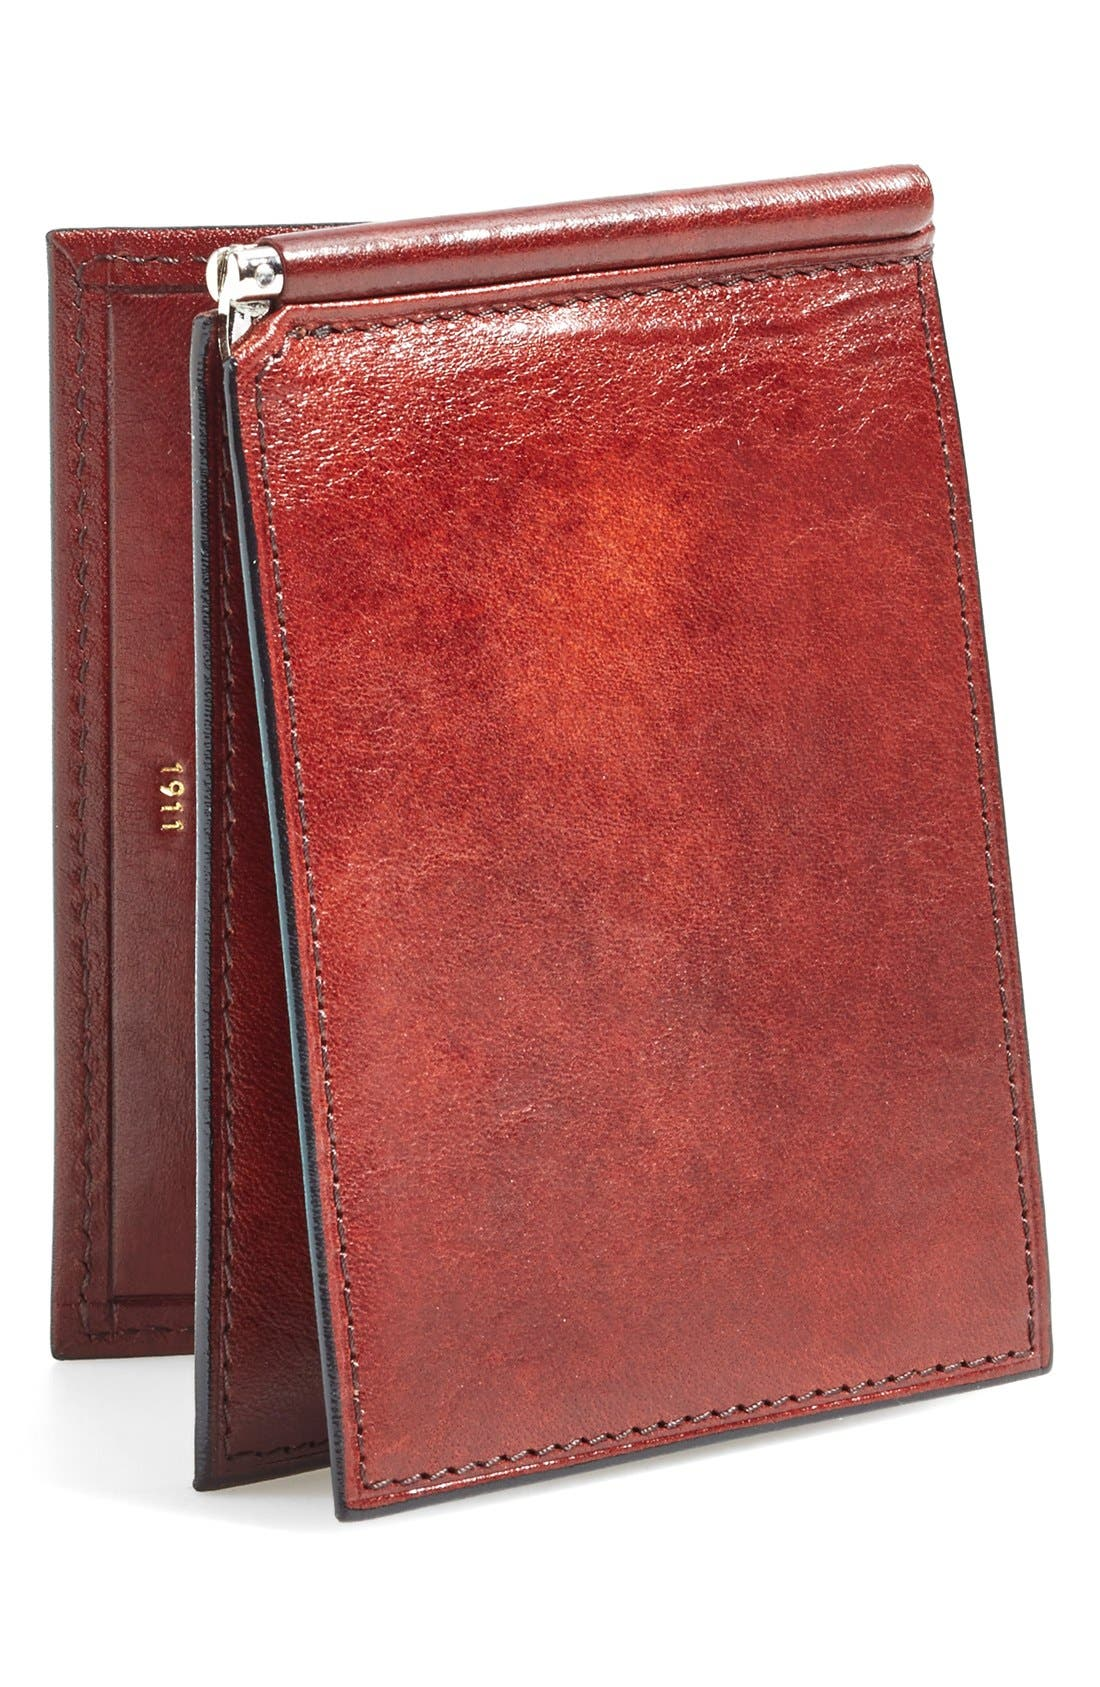 Alternate Image 3  - Bosca 'Old Leather' Money Clip Wallet